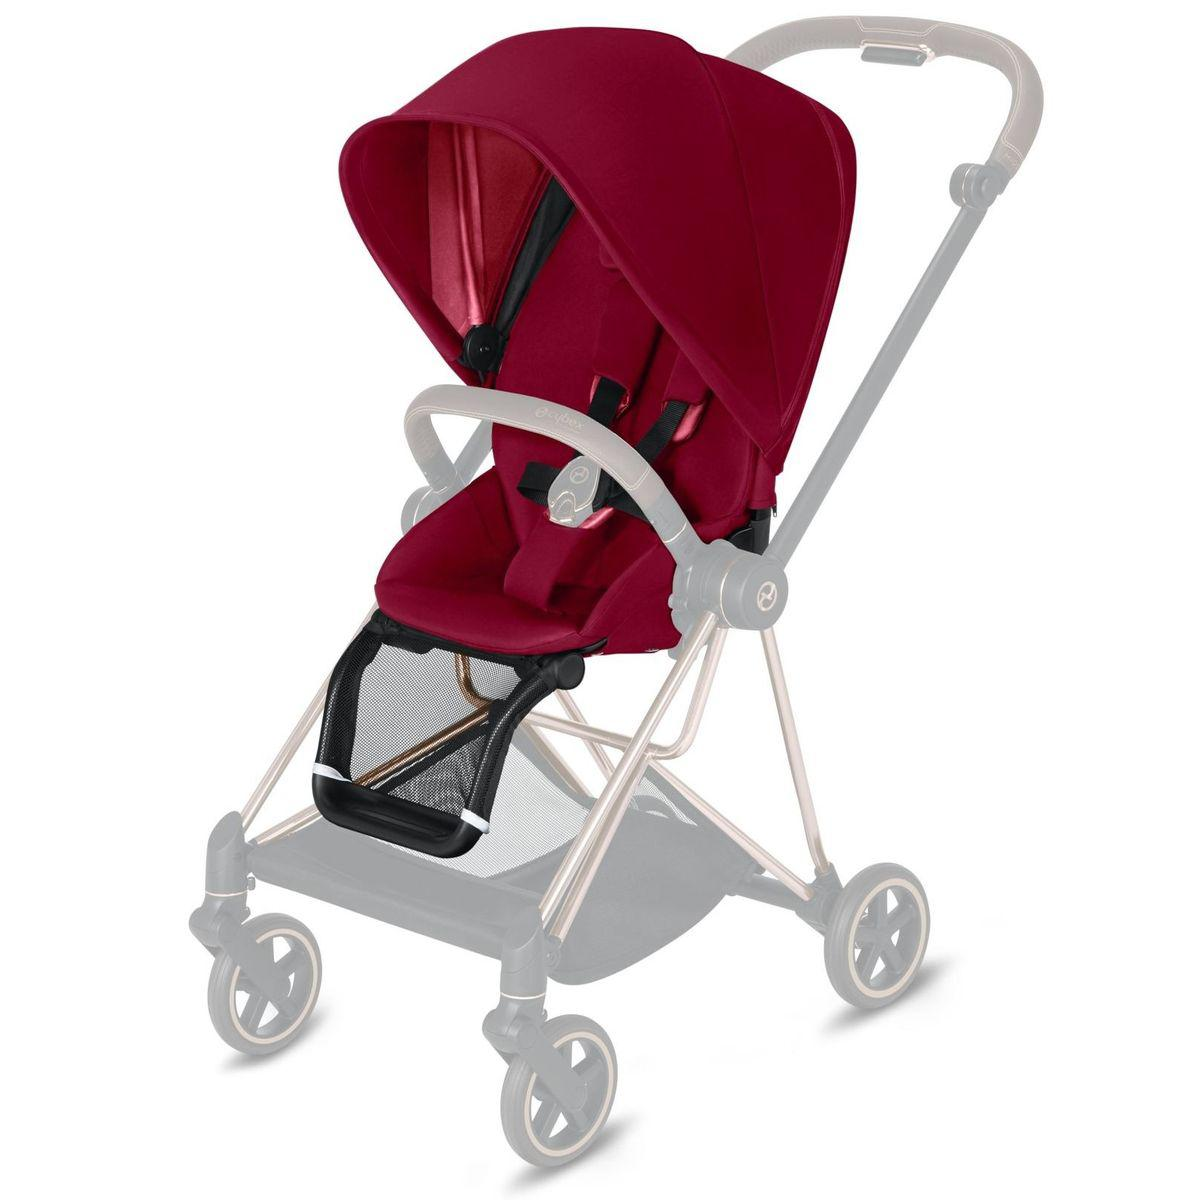 Assise-habillage poussette MIOS Cybex true red-red